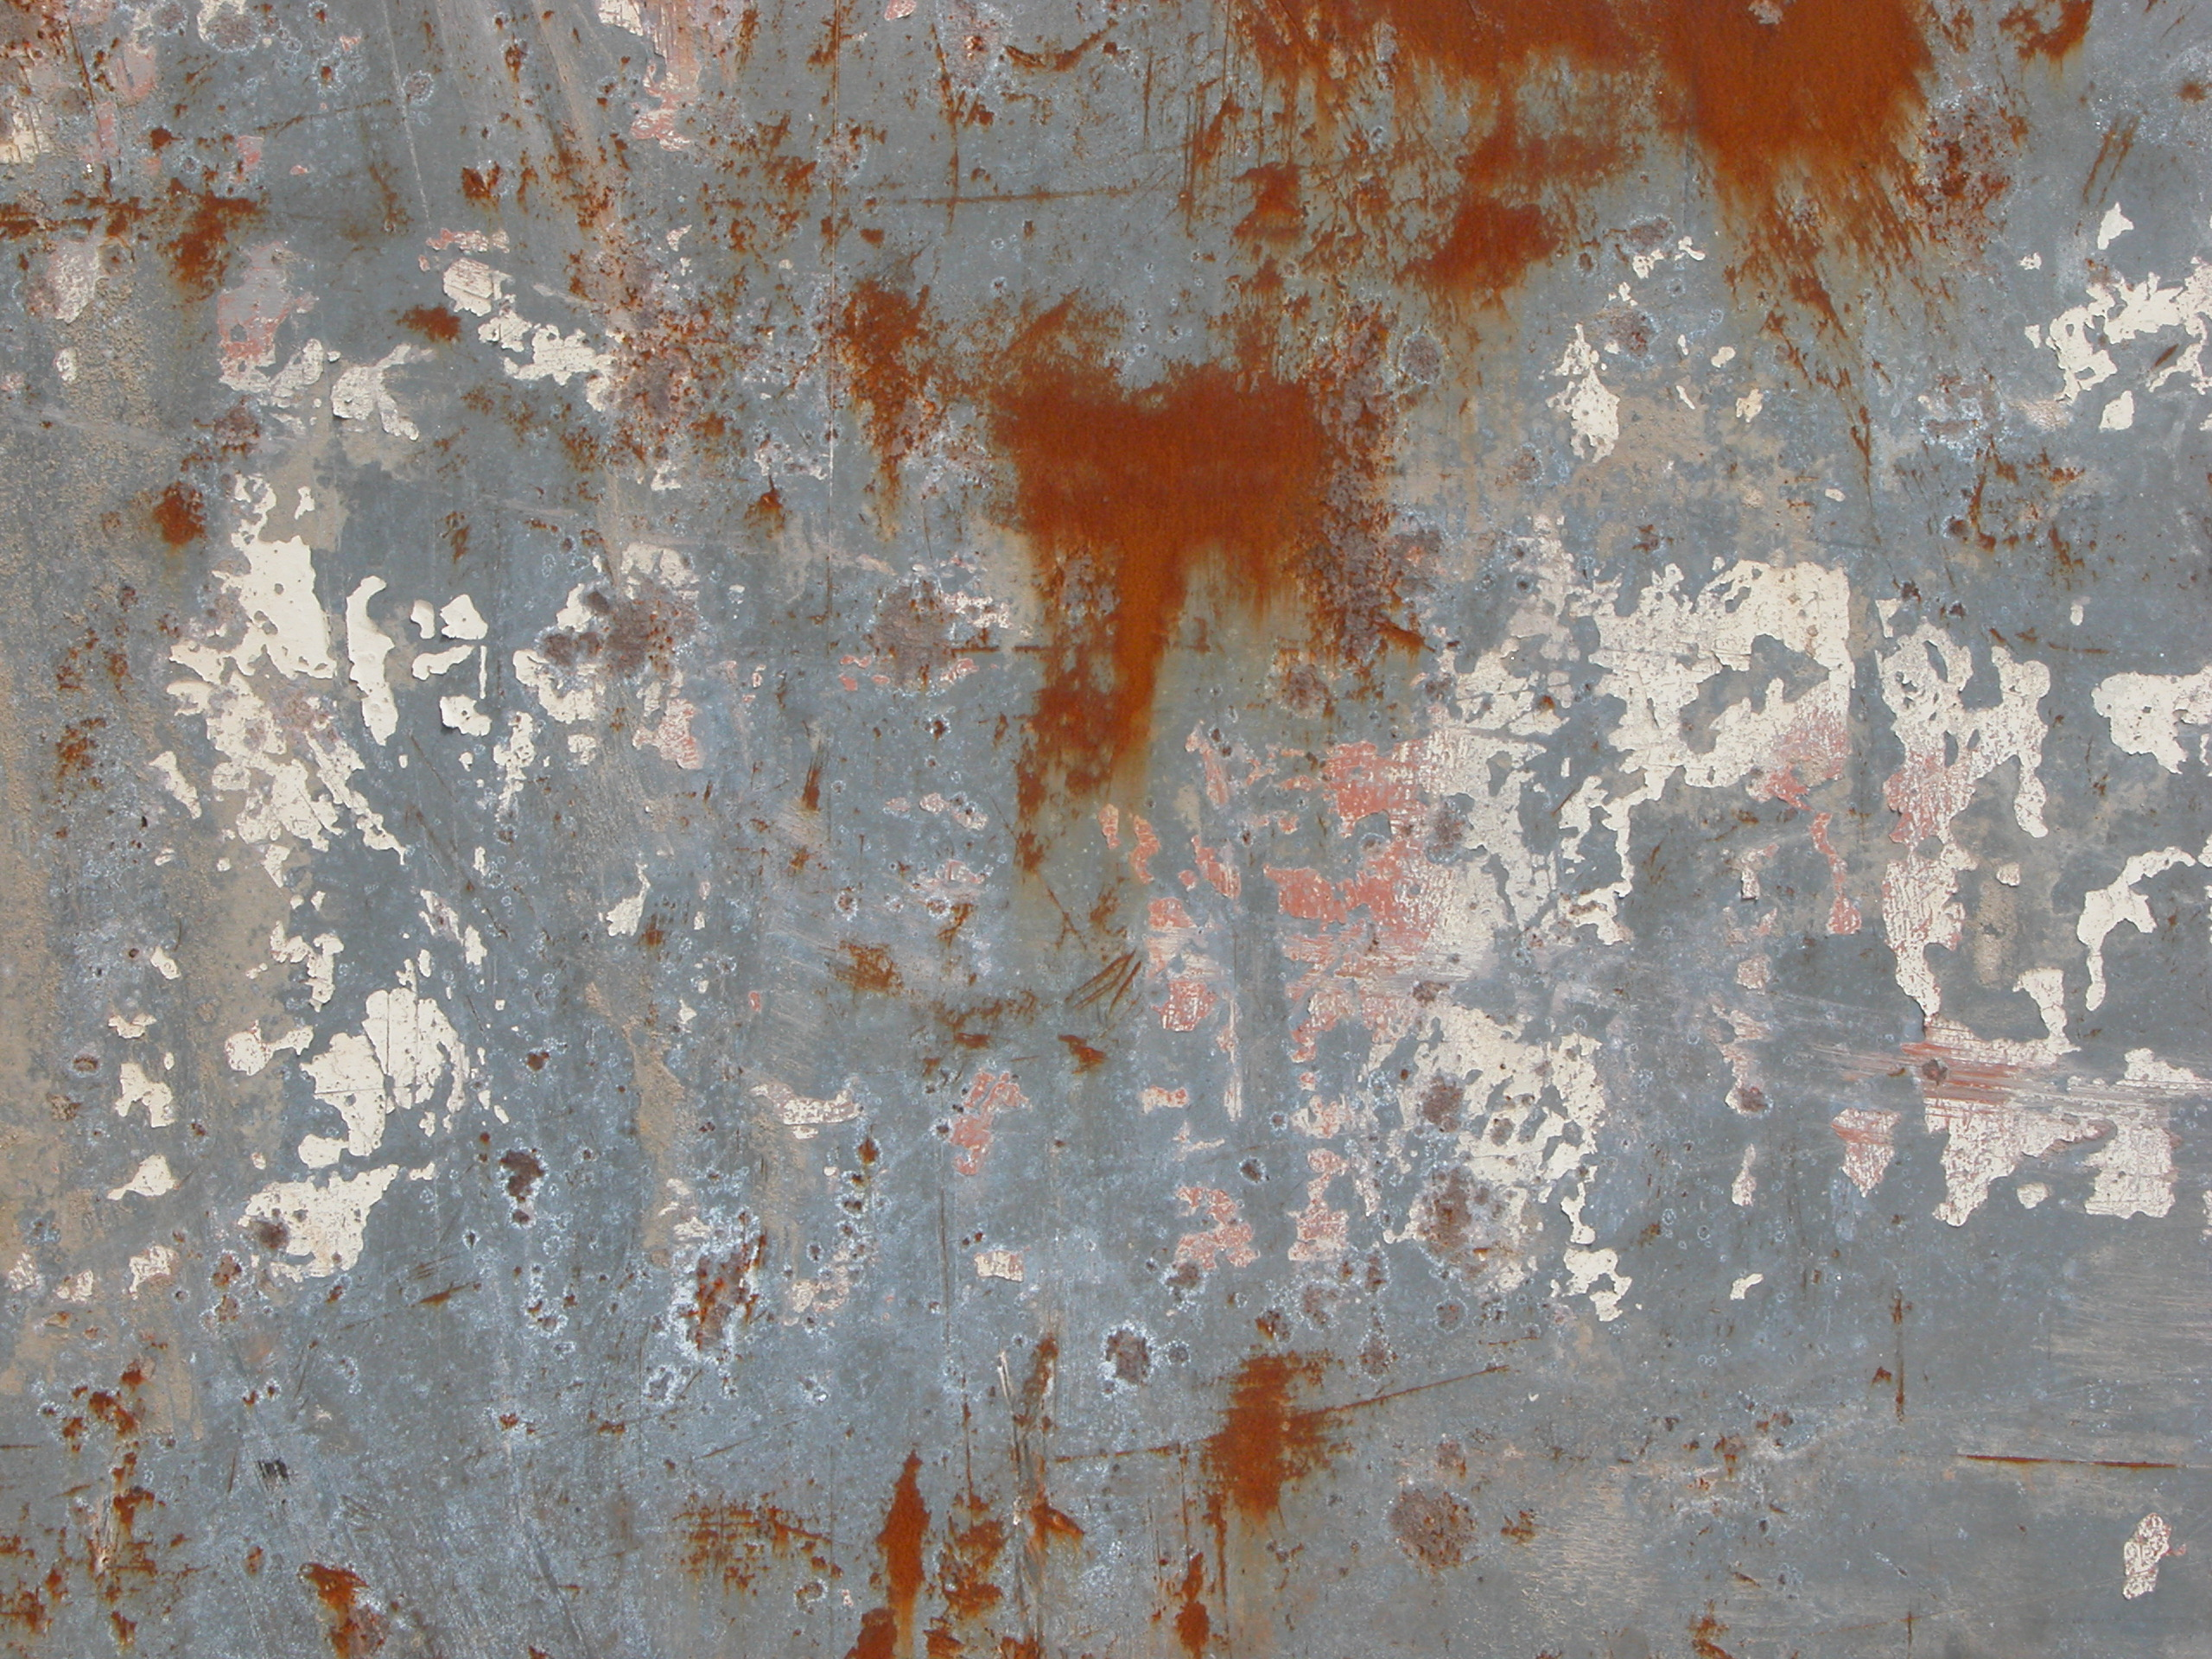 Imageafter Textures Rust Metal Plate Corroded Steel Iron Rusted Texture